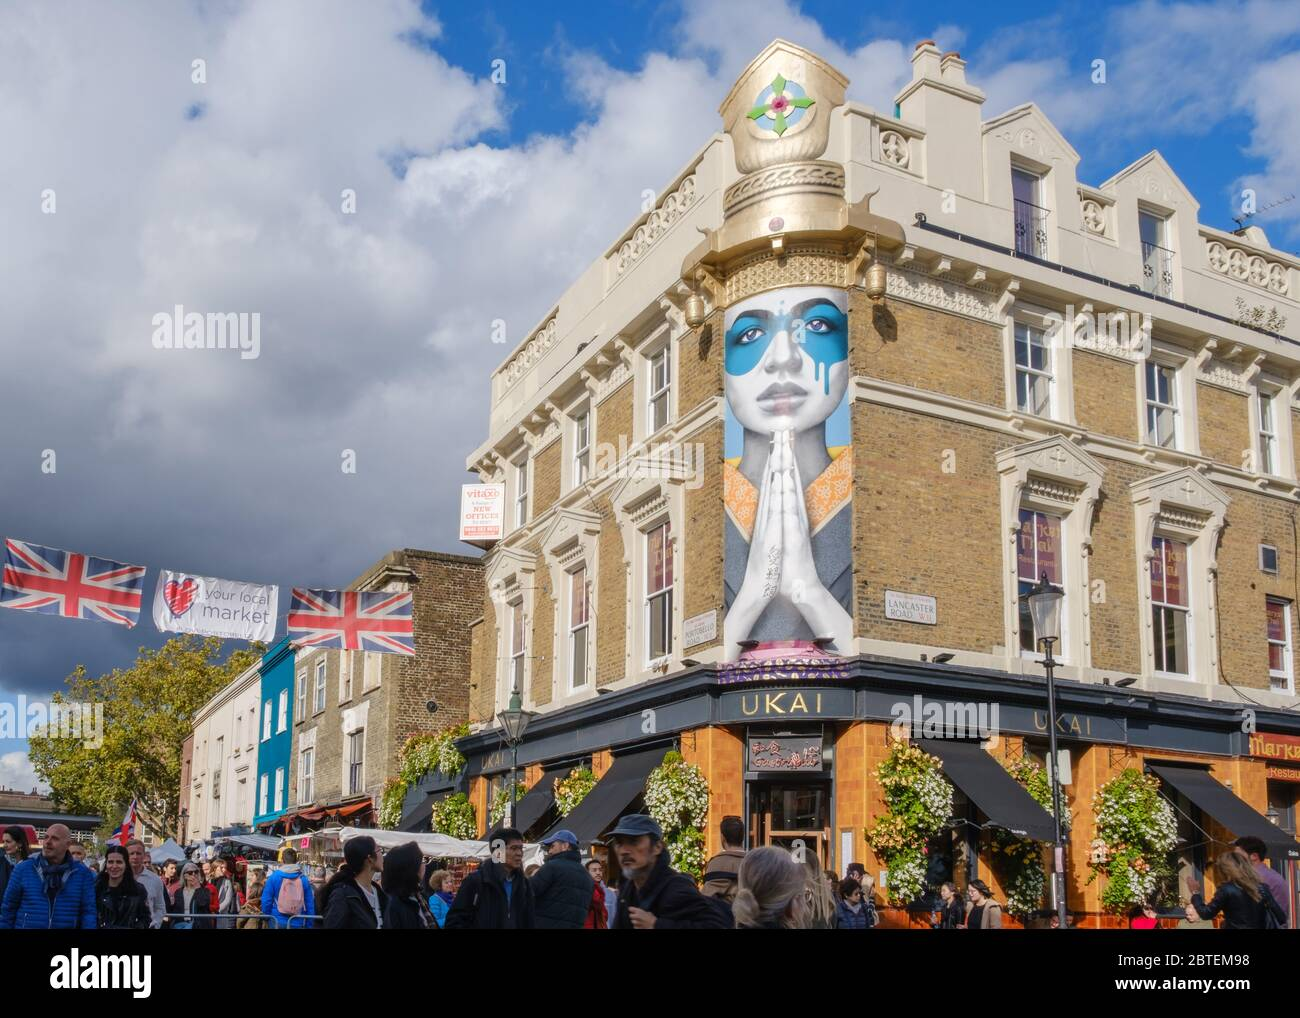 Crowds Of People Shopping At Portobello Road Market With Japanese Restaurant Ukai Mural Street Art Lady Kinoko By Fin Dac In Background Stock Photo Alamy